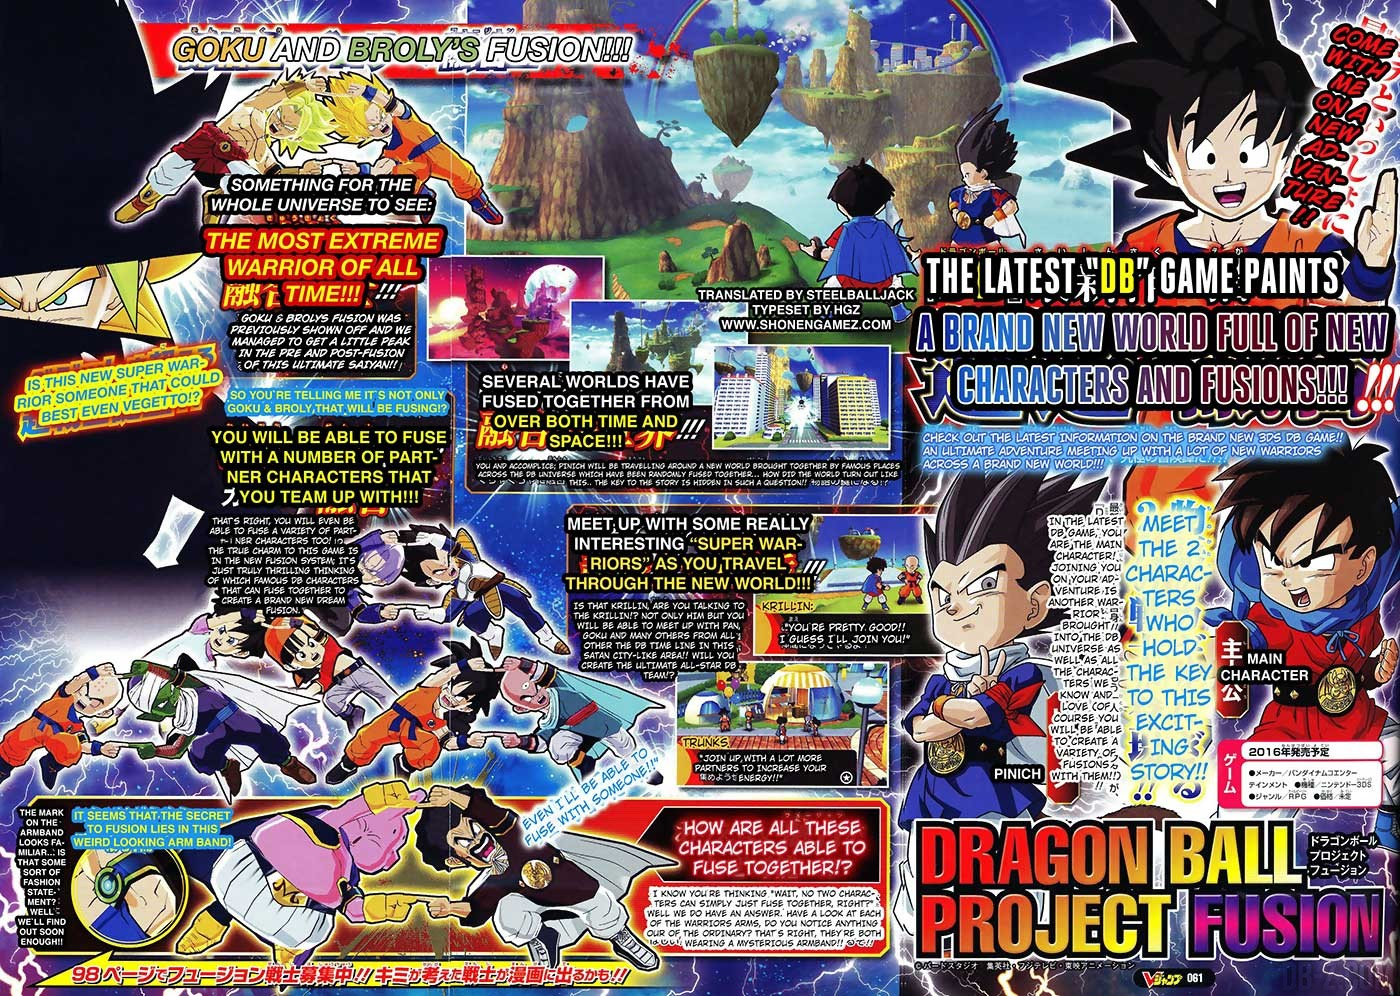 Dragon Ball Project Fusion : Traduction du scan